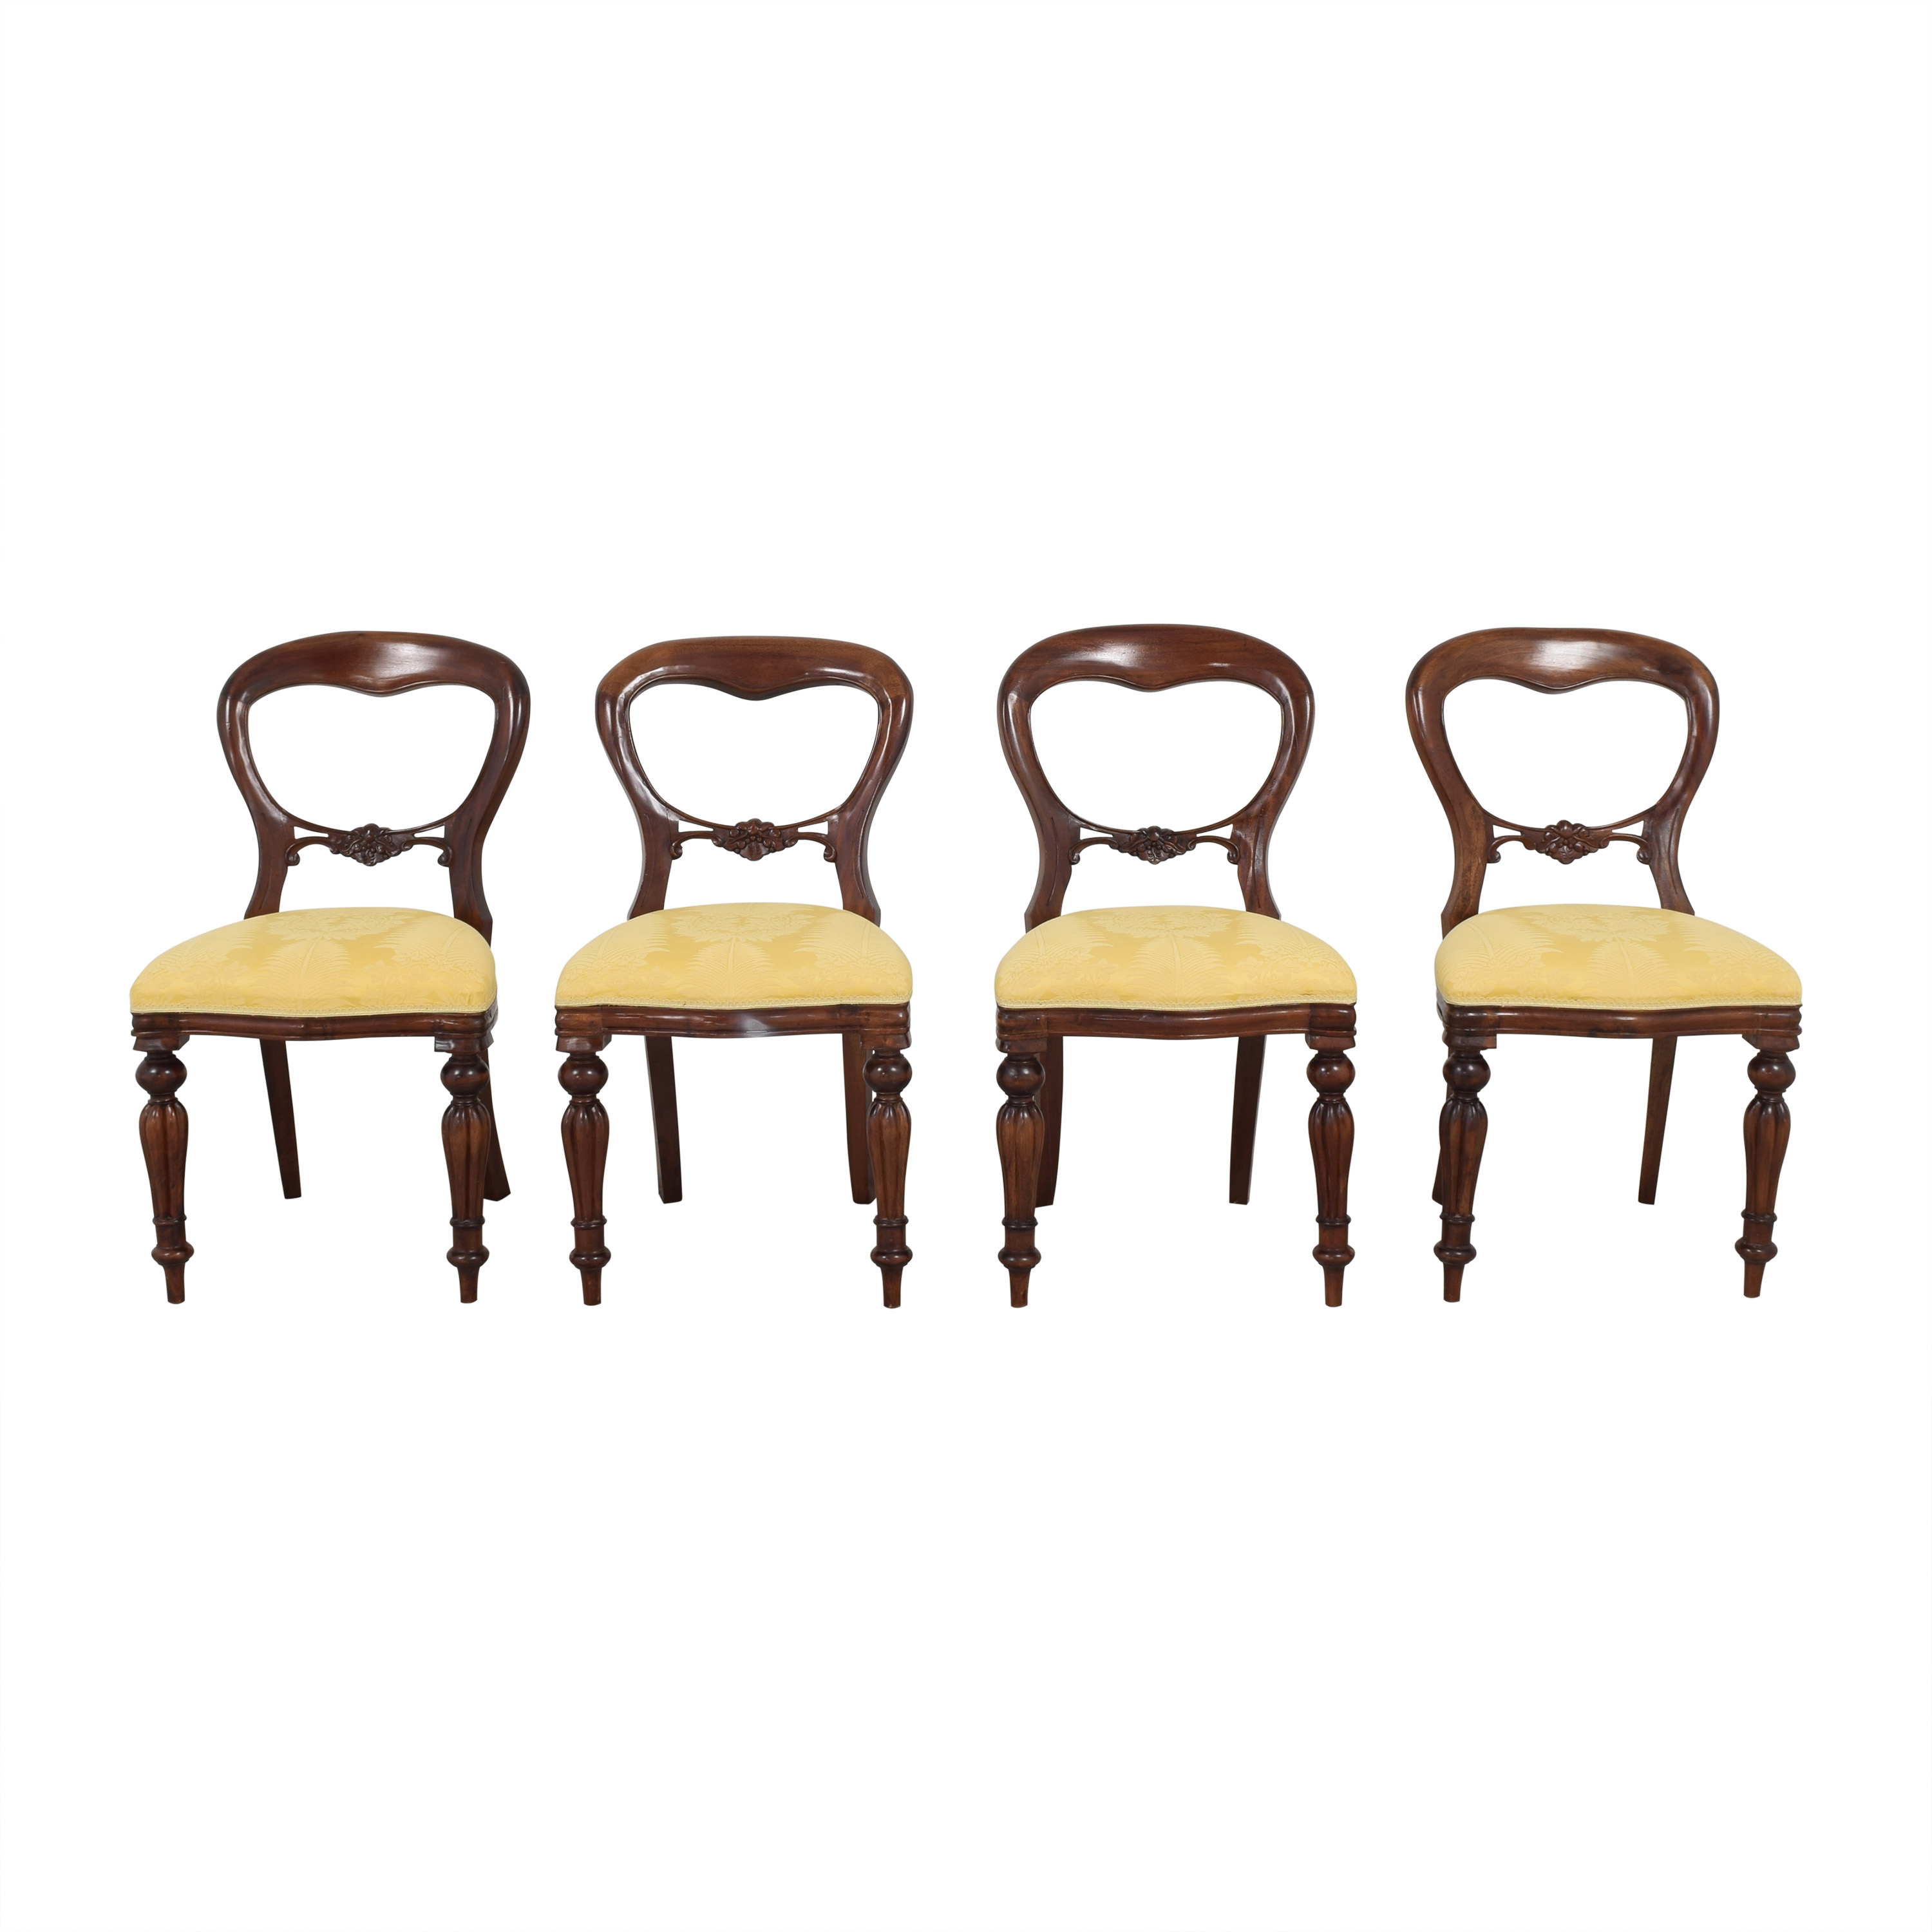 Victorian Style Balloon Back Dining Chairs / Chairs